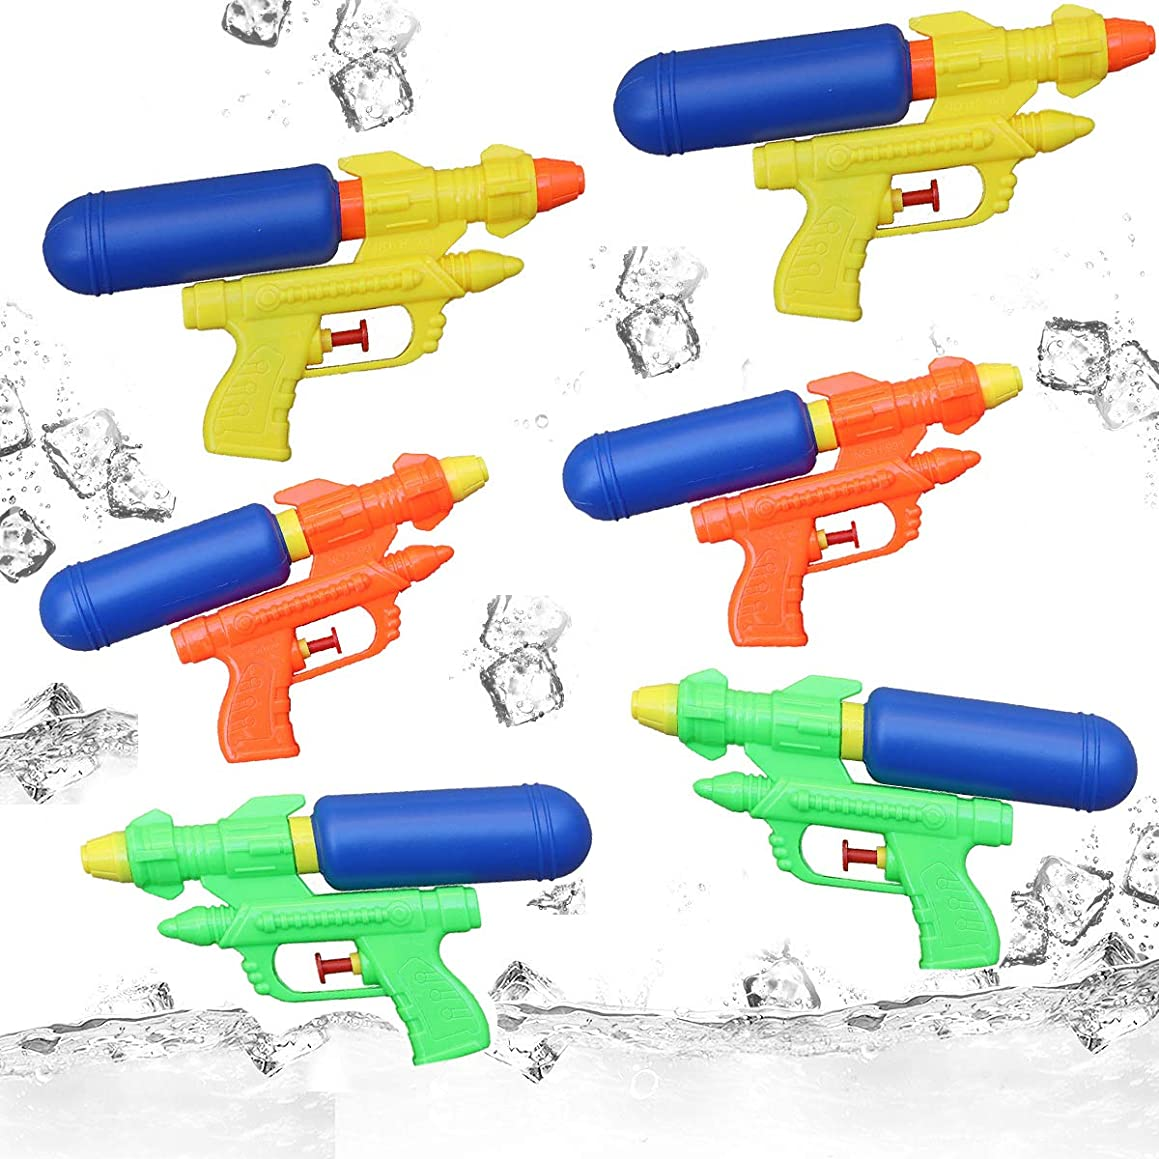 6-Pack Water Gun Blaster Pistol Super Soaker Squirt Guns Set Swimming Pool Water Toys for Kids Outdoor Party Beach Sand Water Fighting